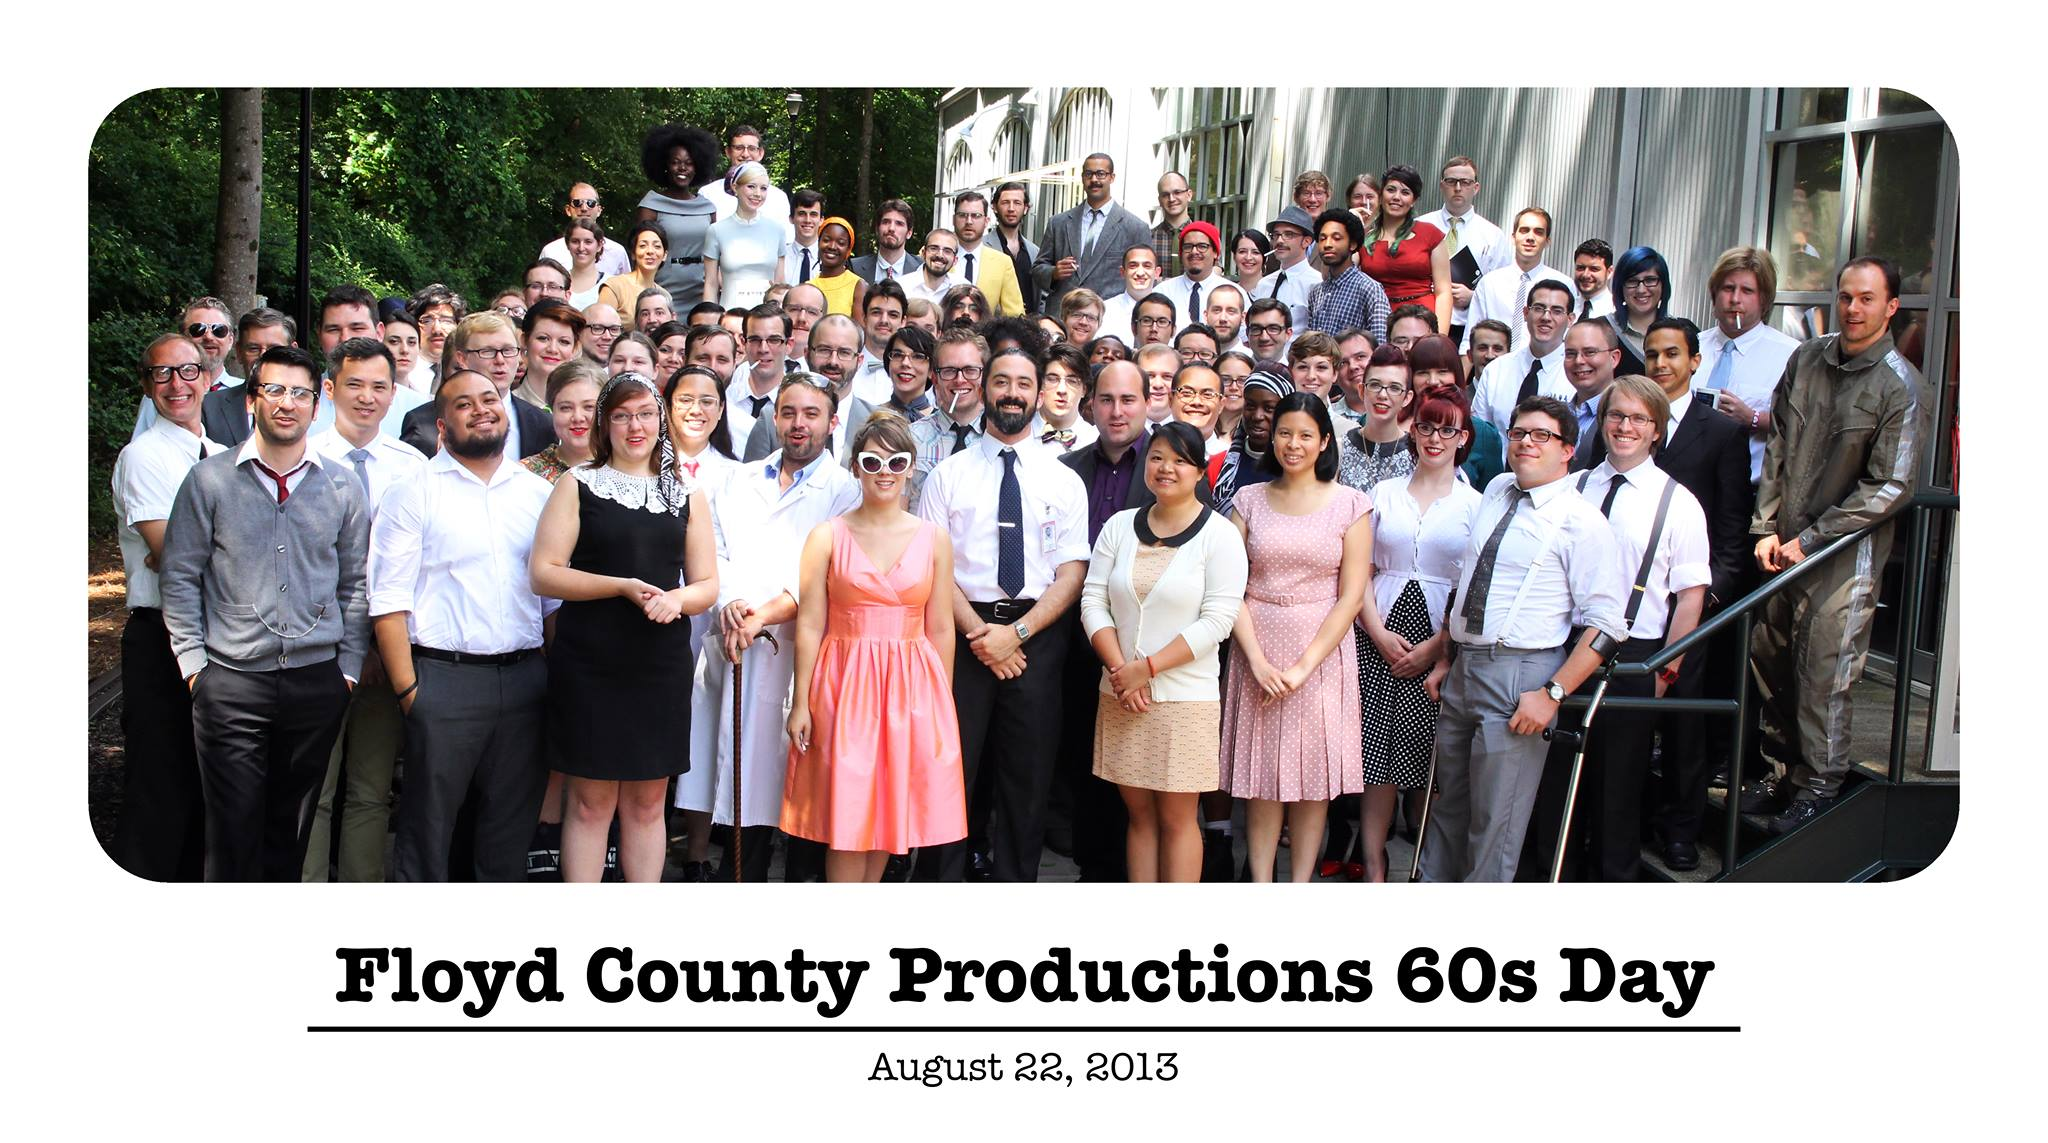 60's Day @ Floyd County Productions